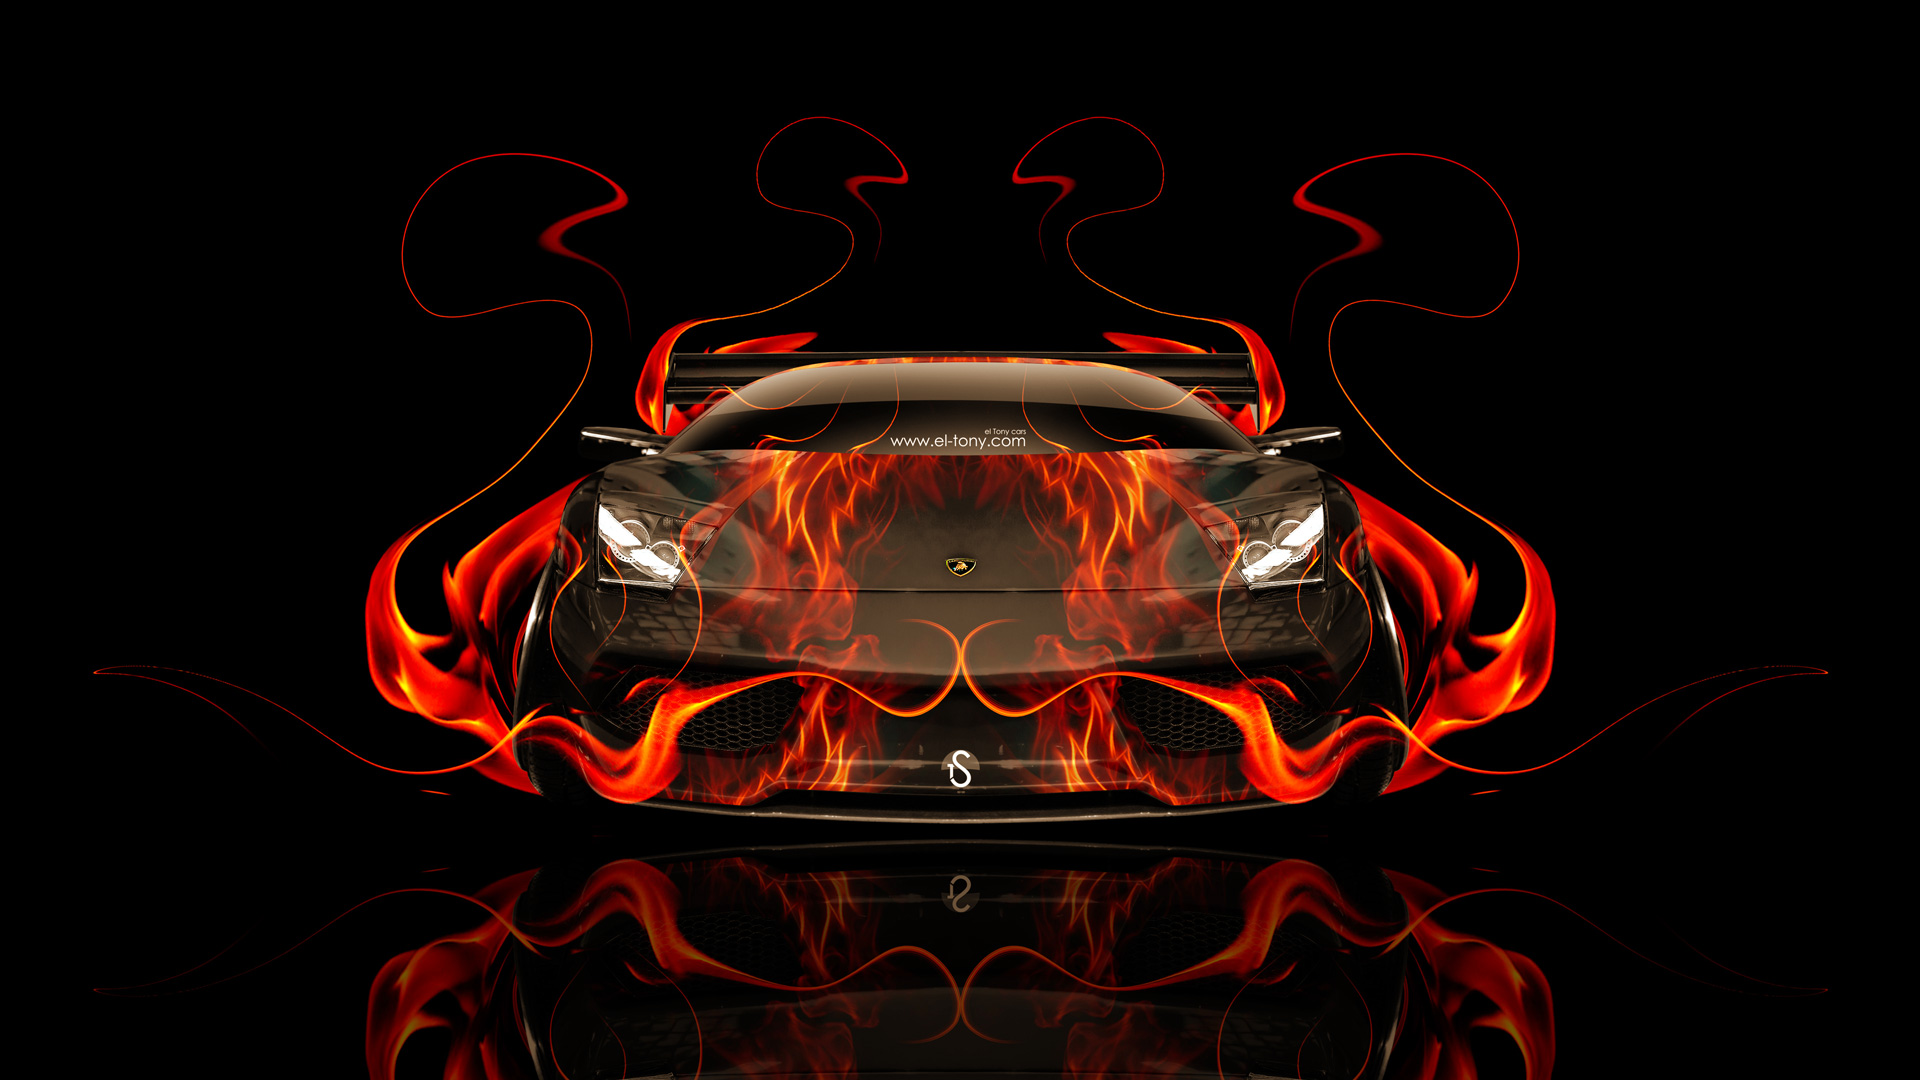 Merveilleux Lamborghini Gallardo Back Fire Abstract Car 2014 · Lamborghini Murcielago  Front Fire Car 2014